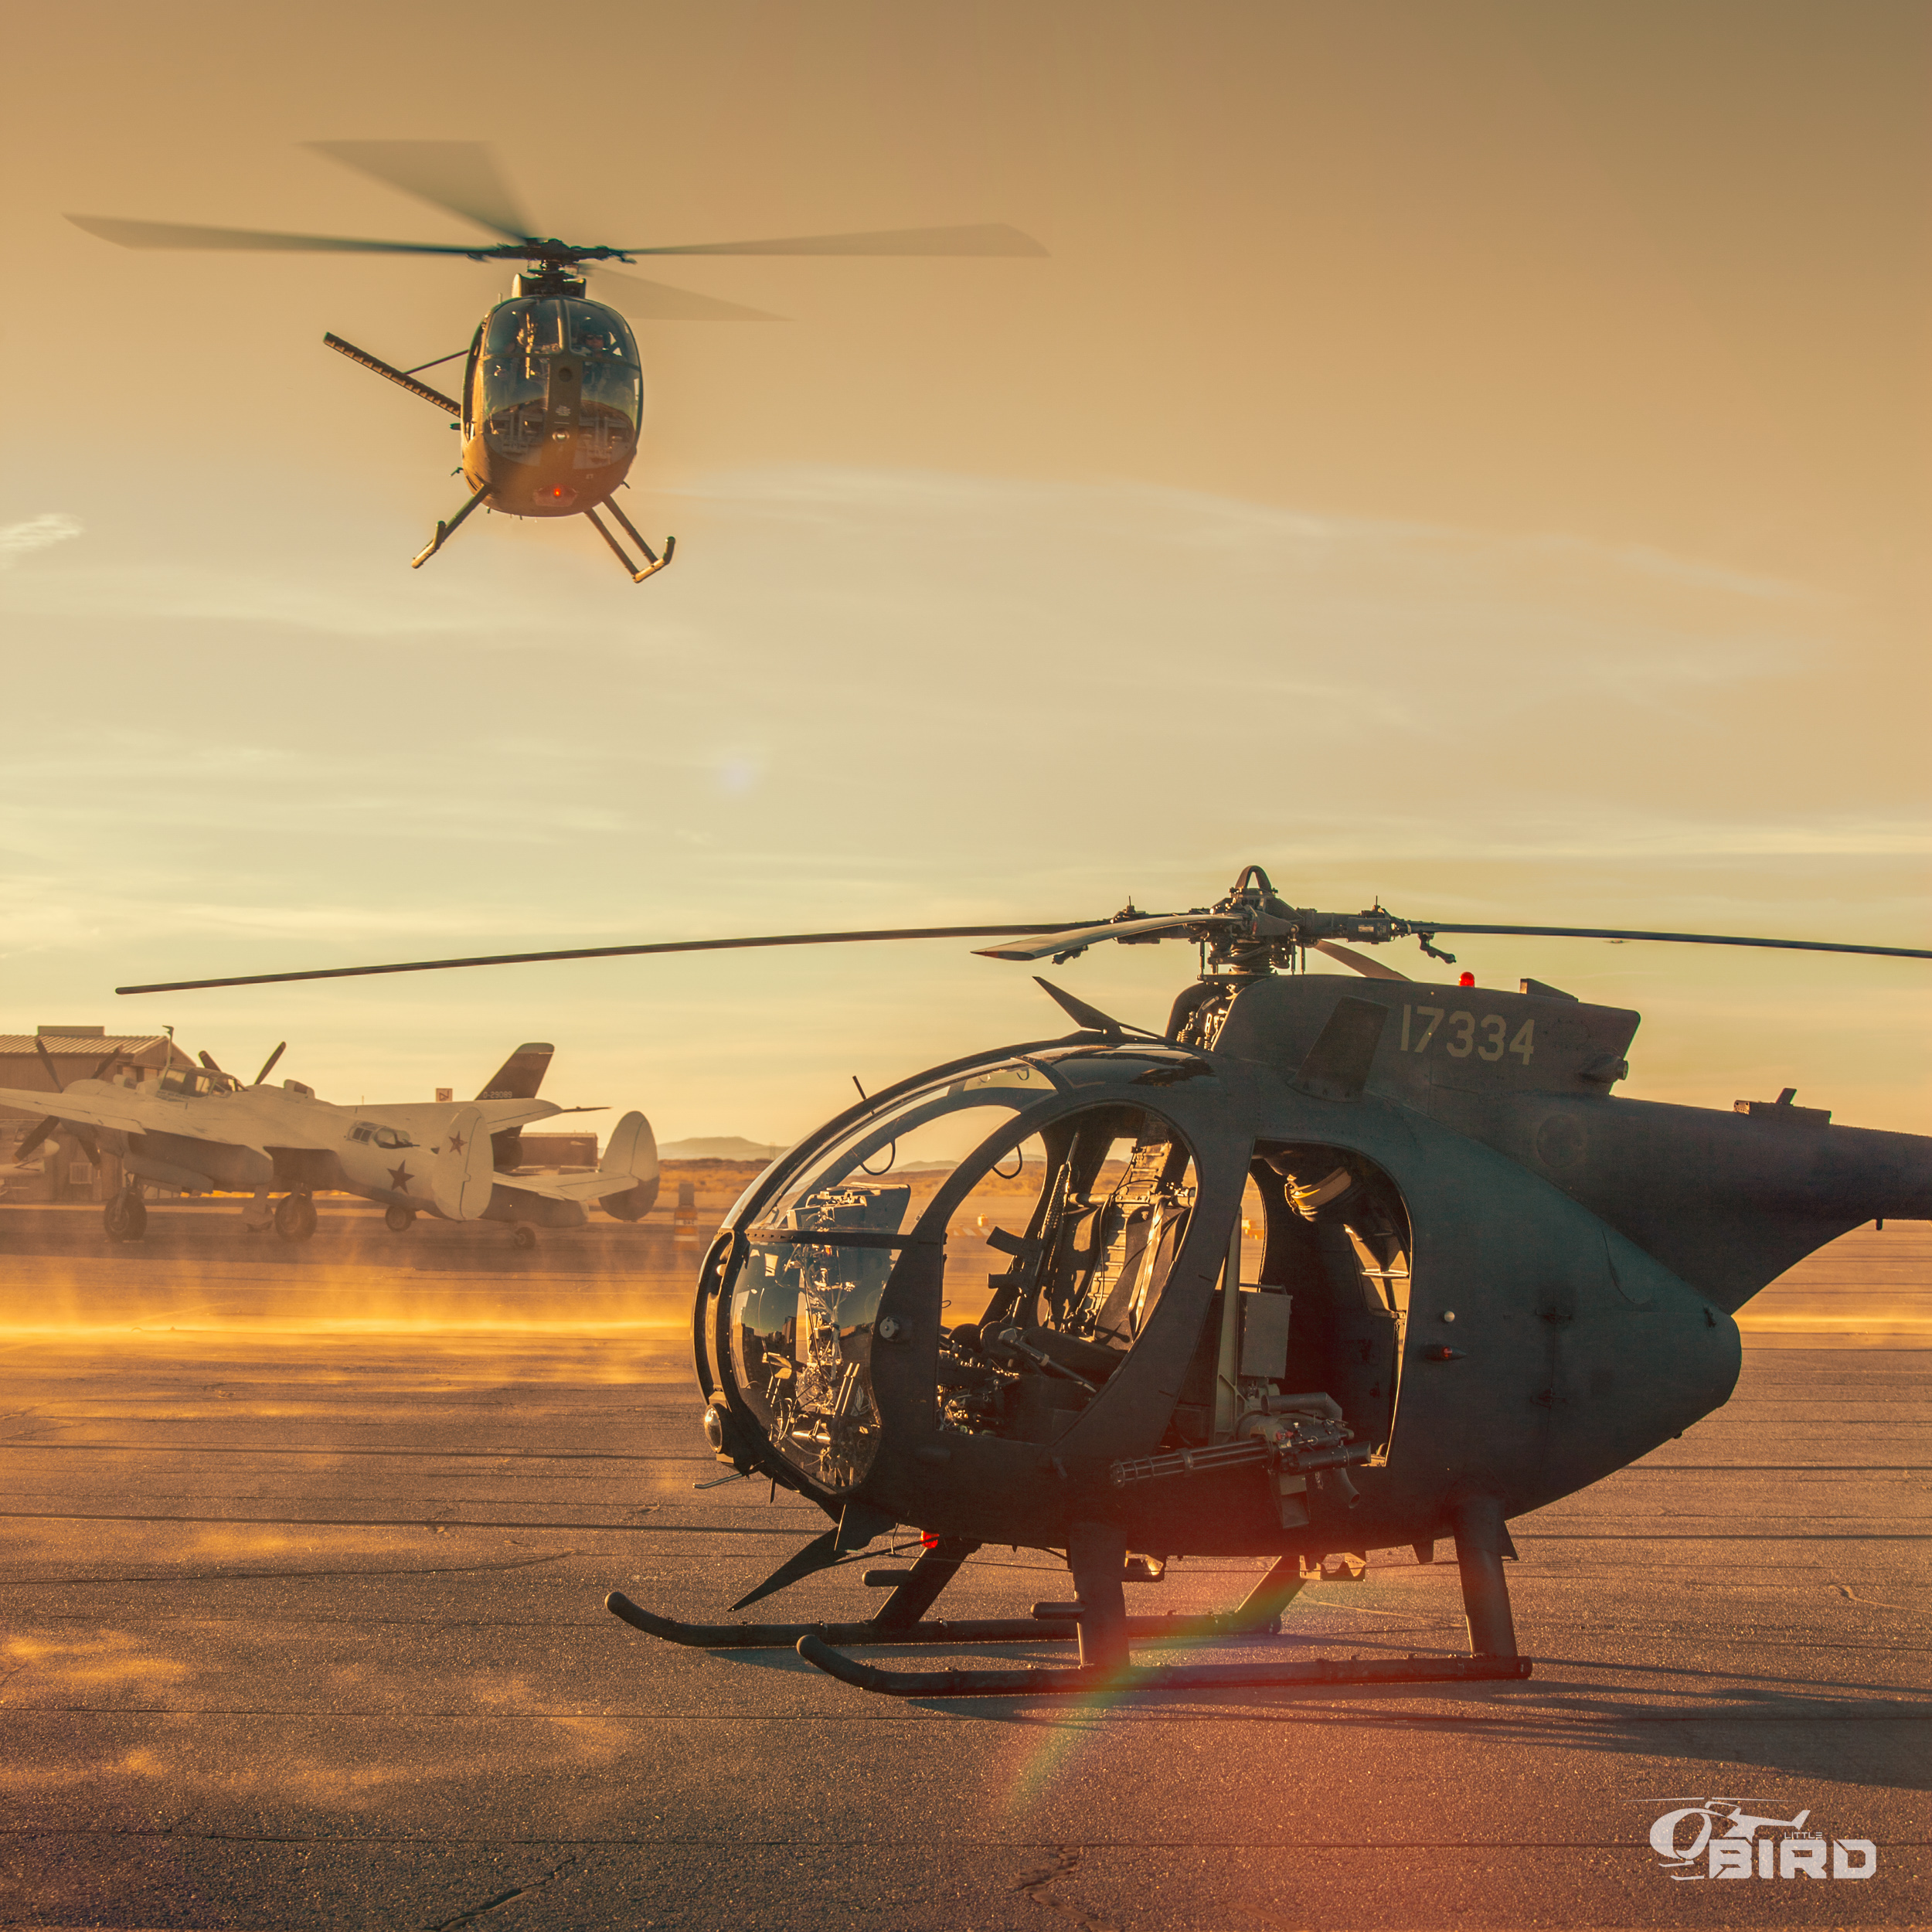 HELICOPTER PHOTOGRAPHY